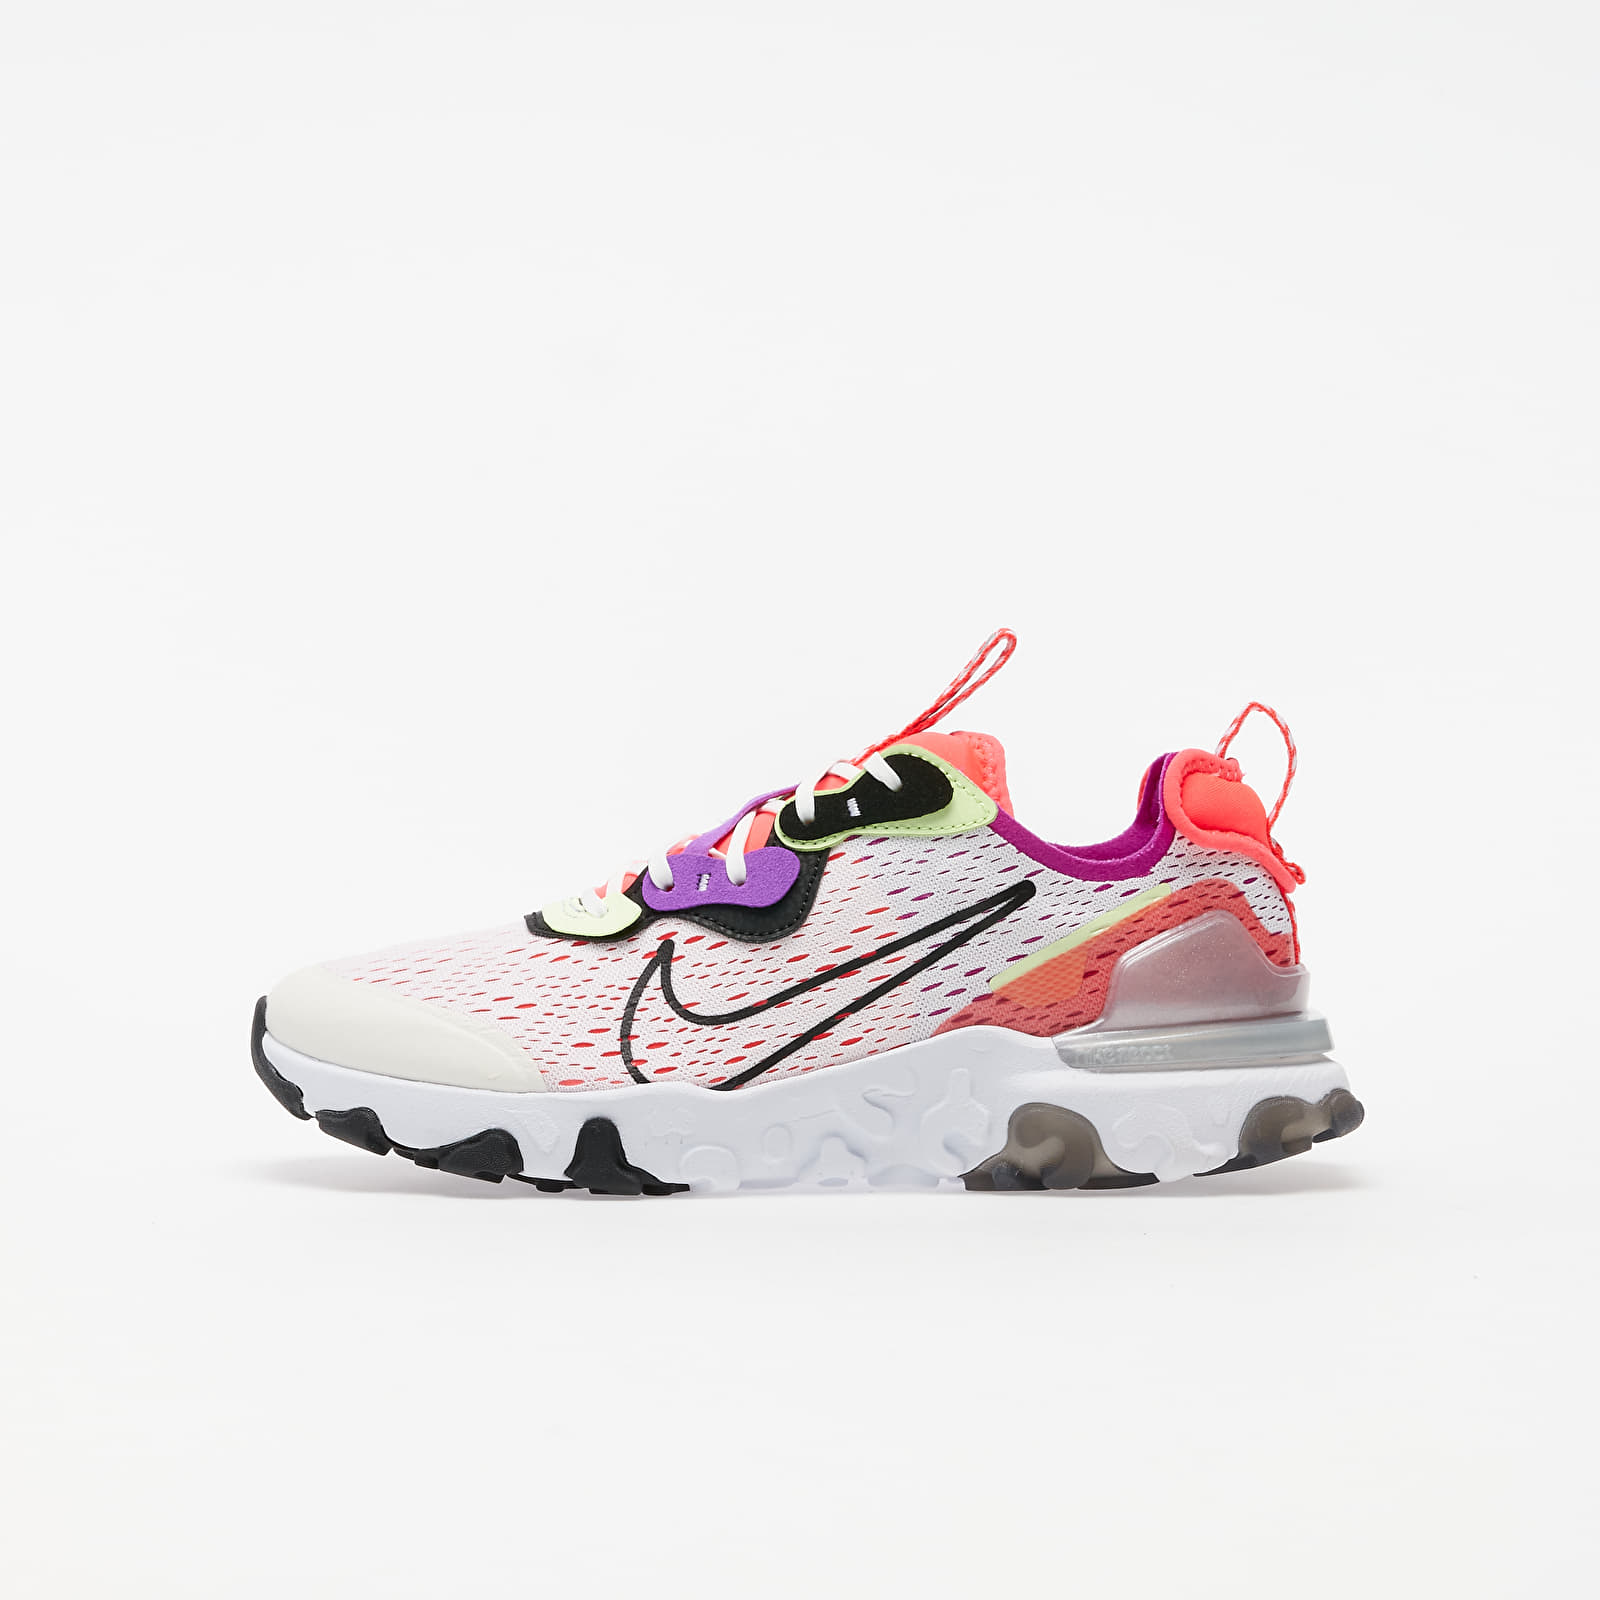 Încălțăminte copii Nike React Vision (GS) Summit White/ Black-Barely Volt